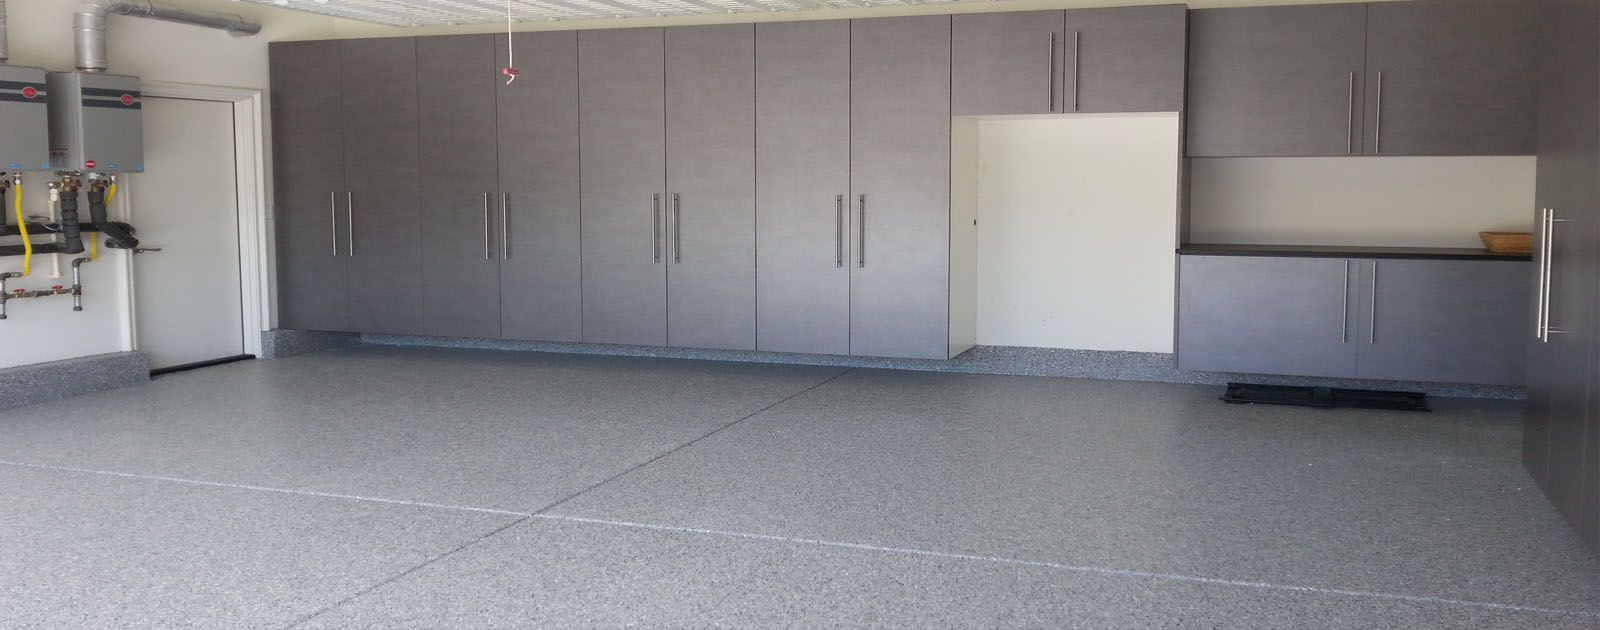 Ca Resurfacing 1 Day Garage Floors Orange County Epoxy Coatings Garage Flooring Orange County Garage Fl Garage Floor Garage Floor Coatings Garage Epoxy